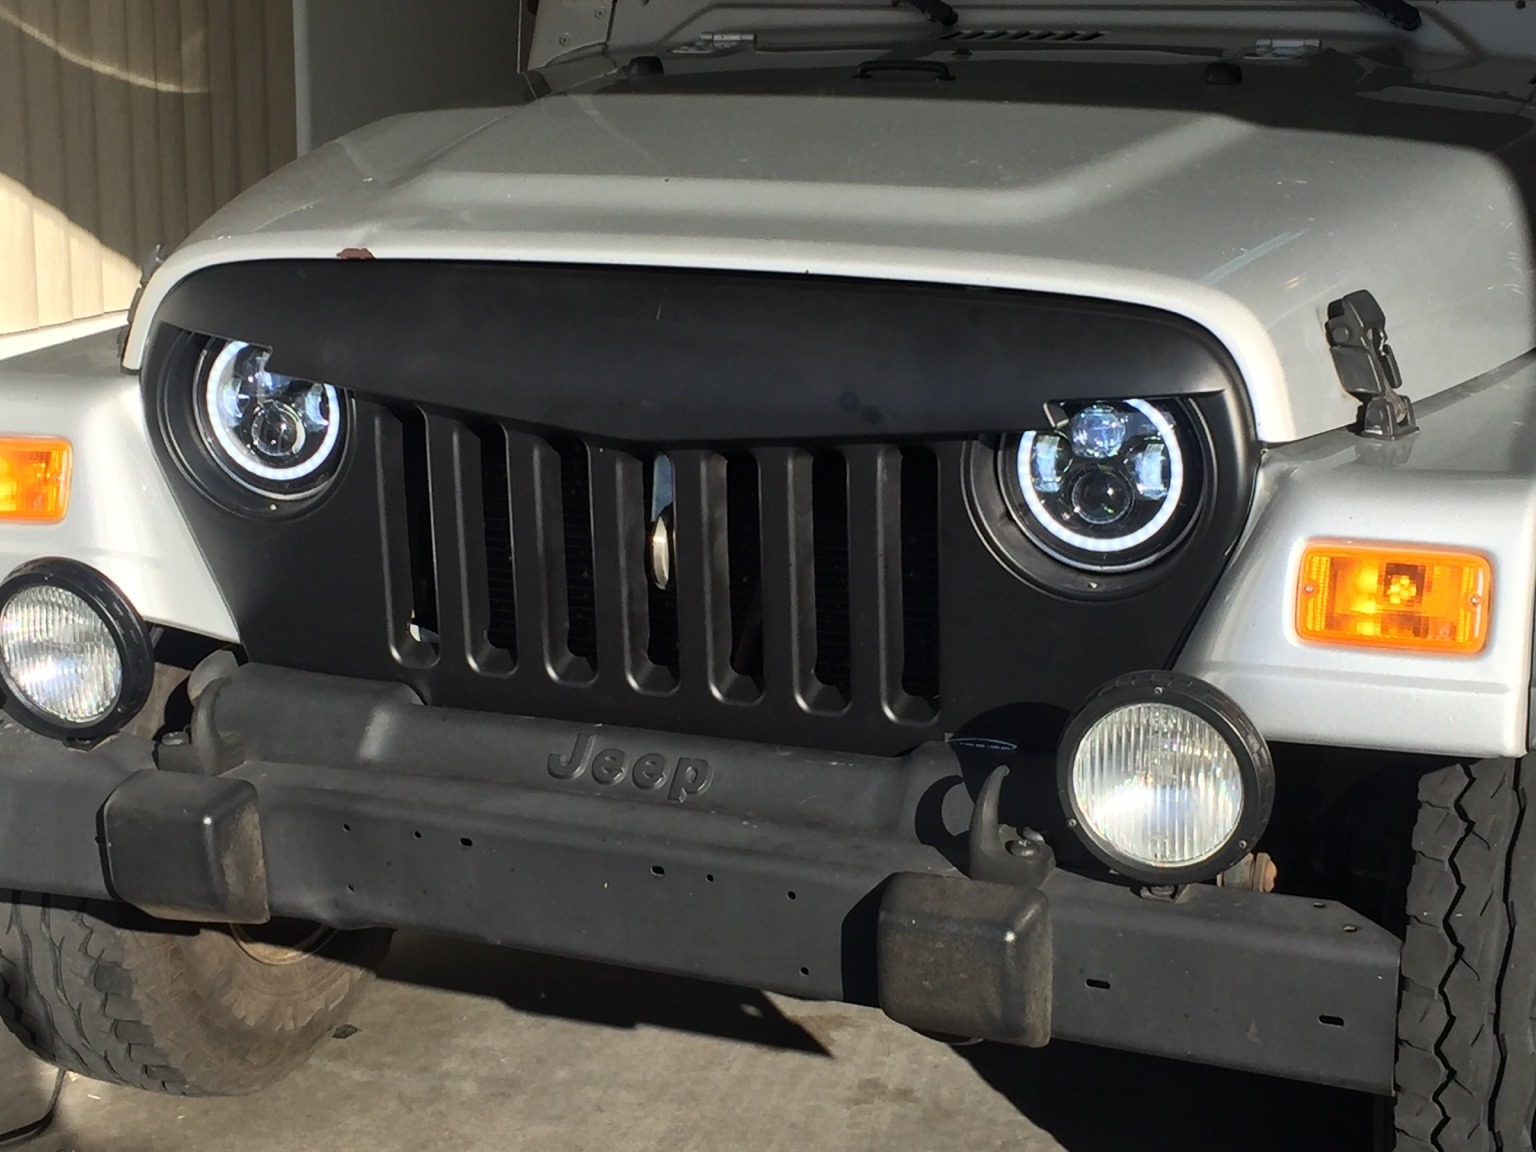 Ecb Fa A Cf C D Jpg on Jeep Wrangler Tj Led Headlights